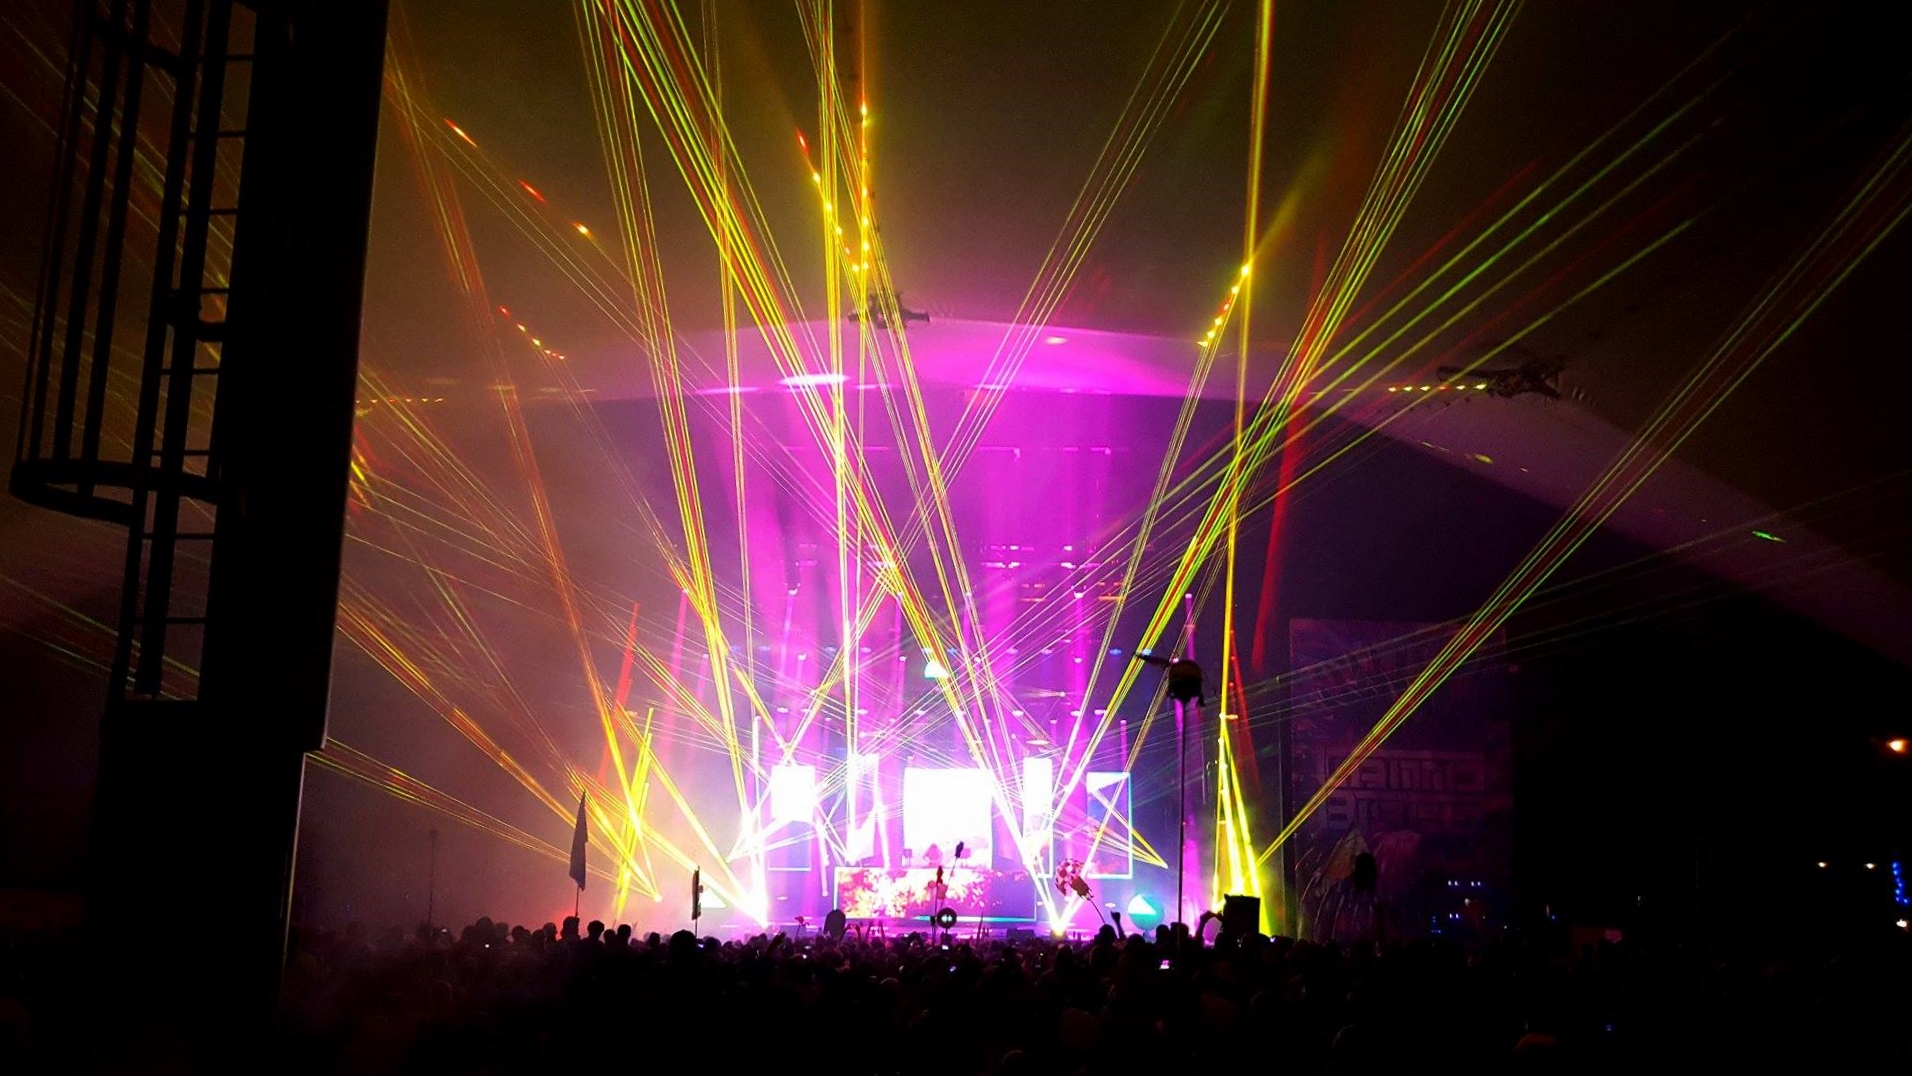 A Picture from Saturday evening's Disco Biscuits set.